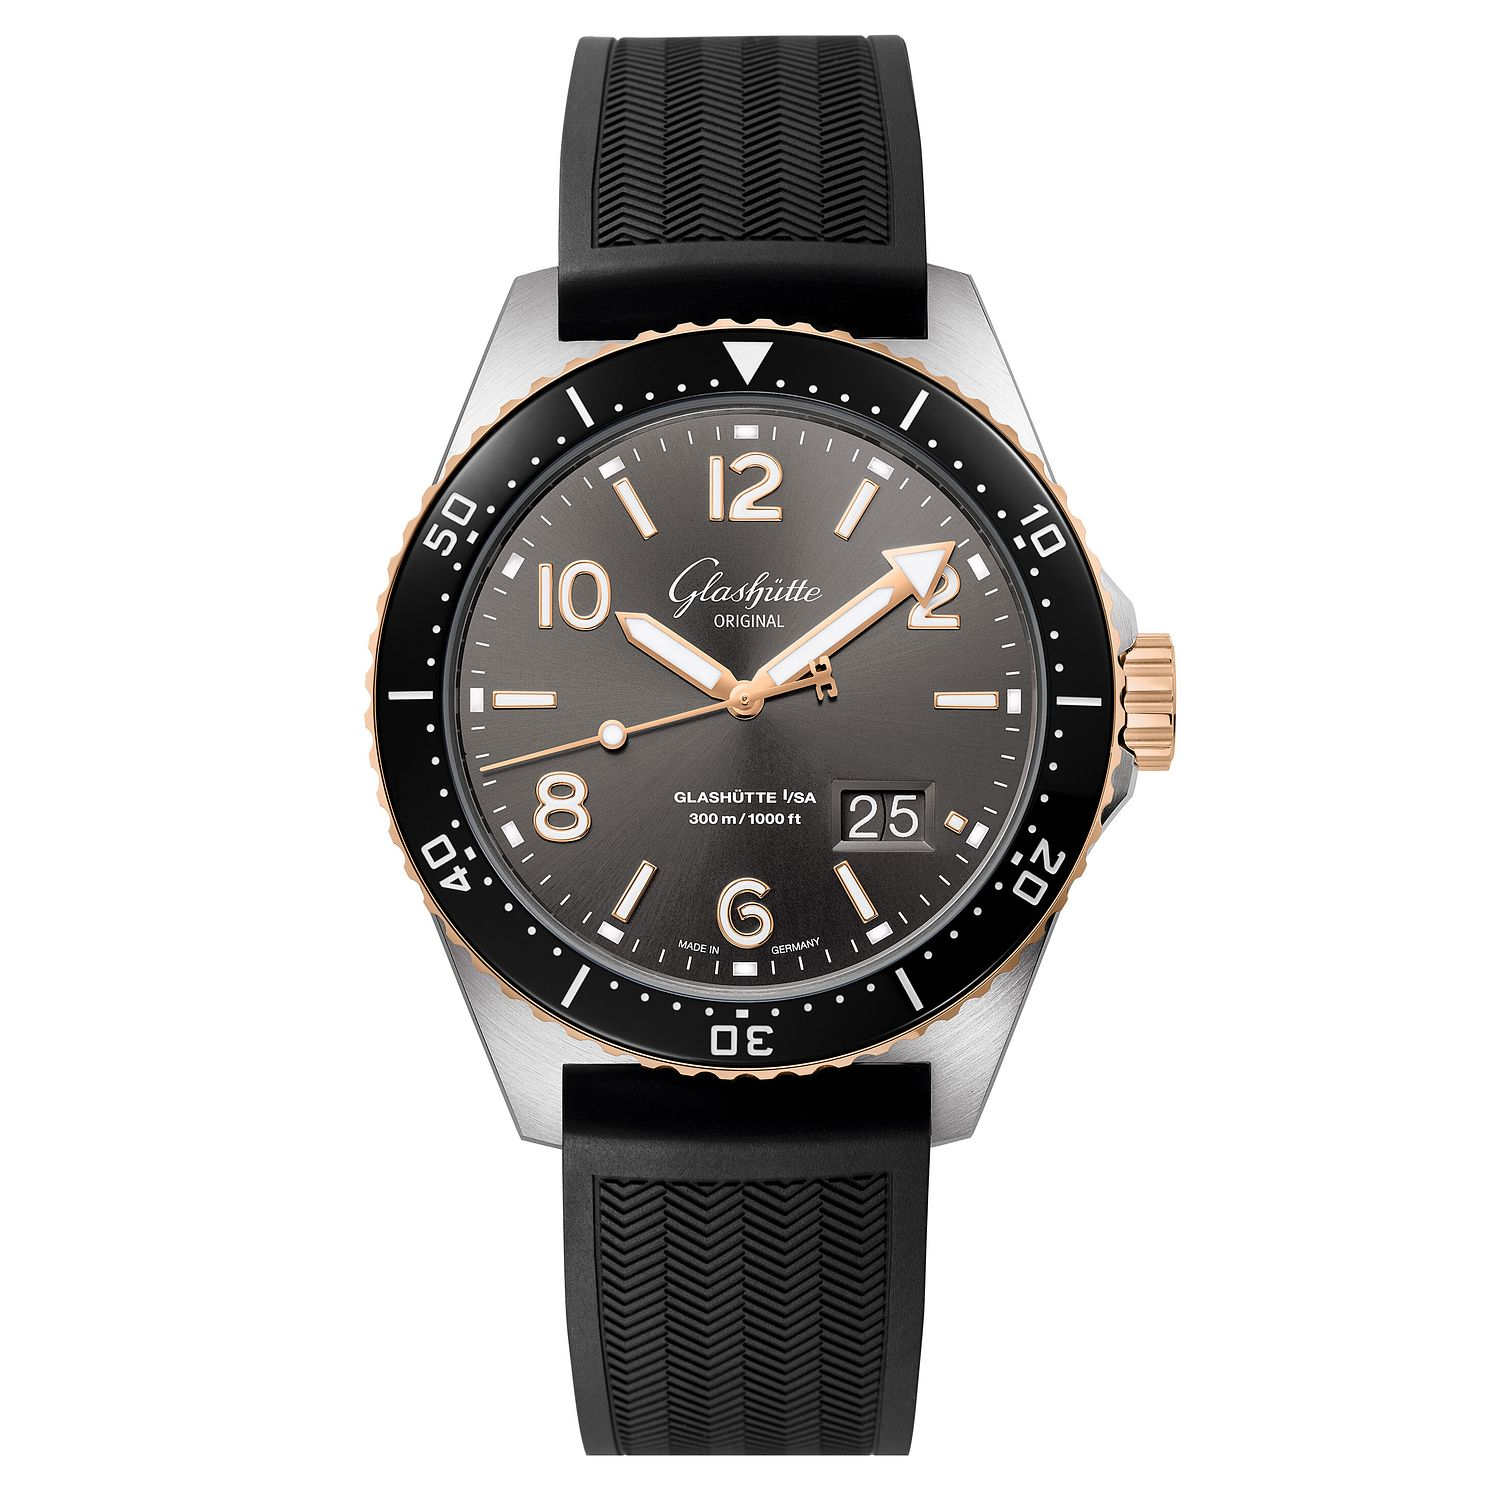 Glashutte SeaQ Panorama Date Men's Black Rubber Strap Watch - Product number 3866130